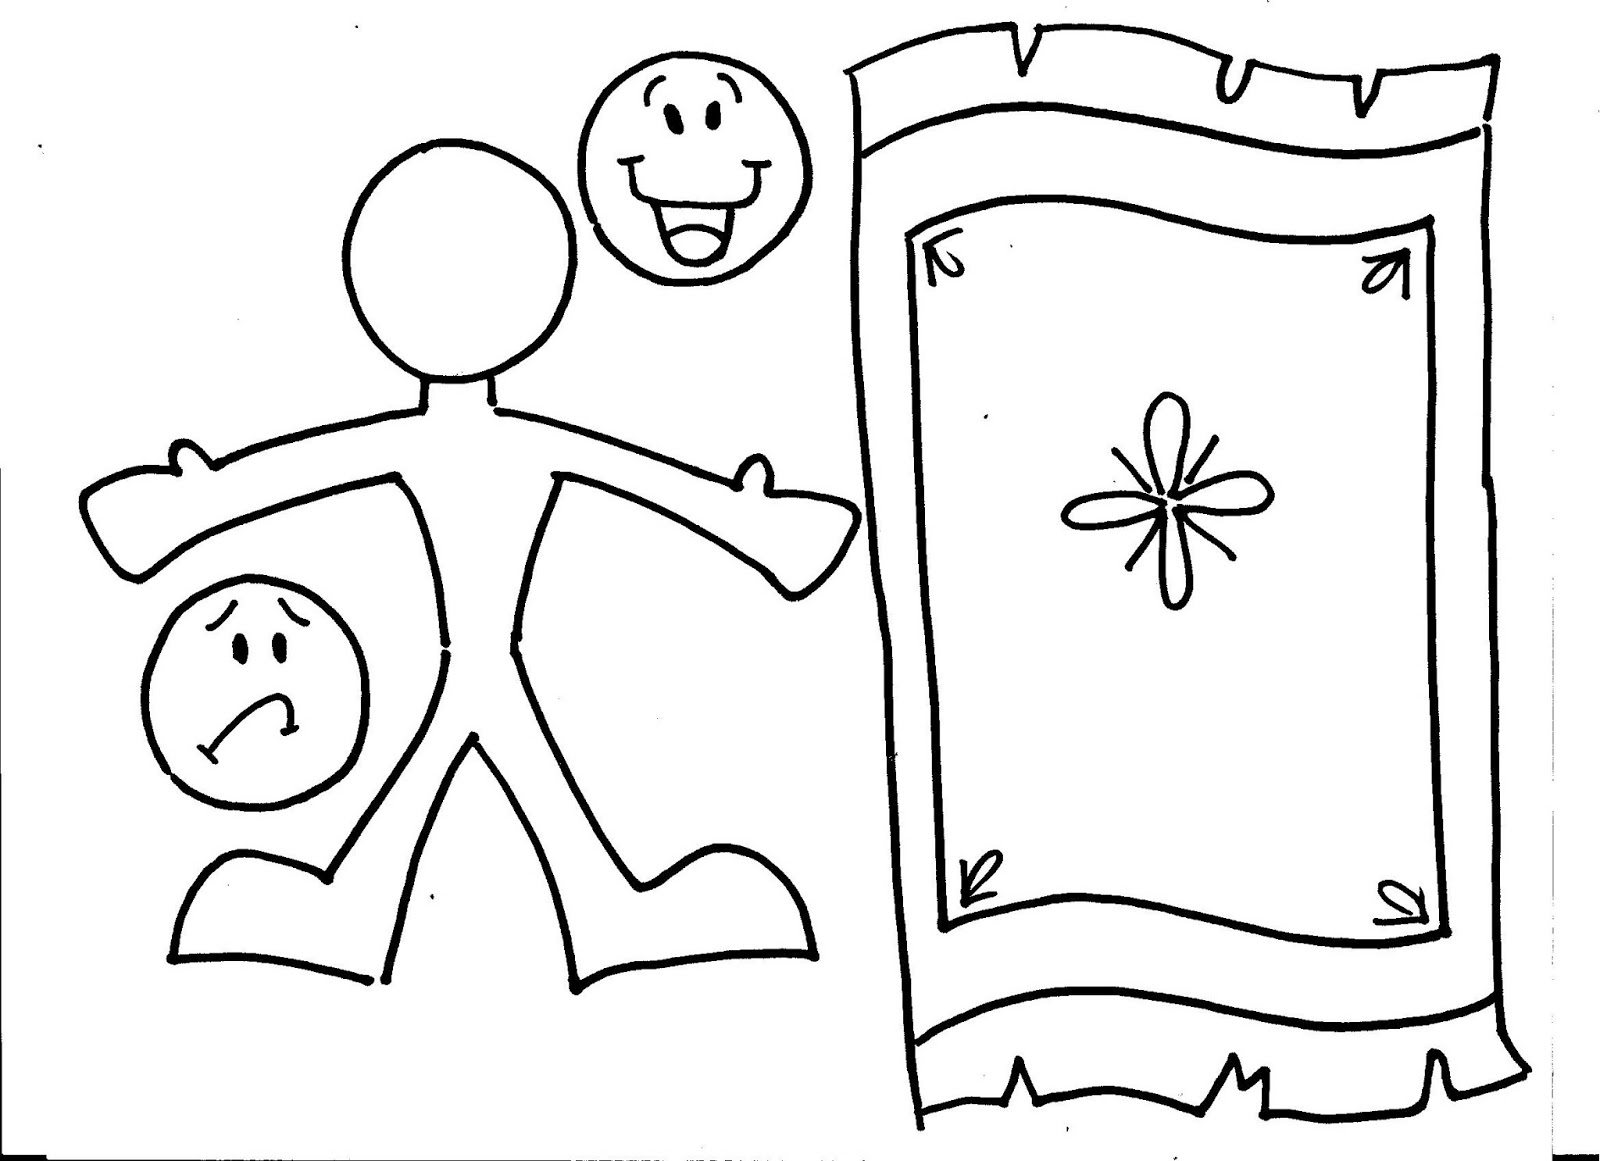 jesus heals a paralyzed man coloring page jesus heals a paralyzed man midweek pinterest paralyzed coloring a man page jesus heals